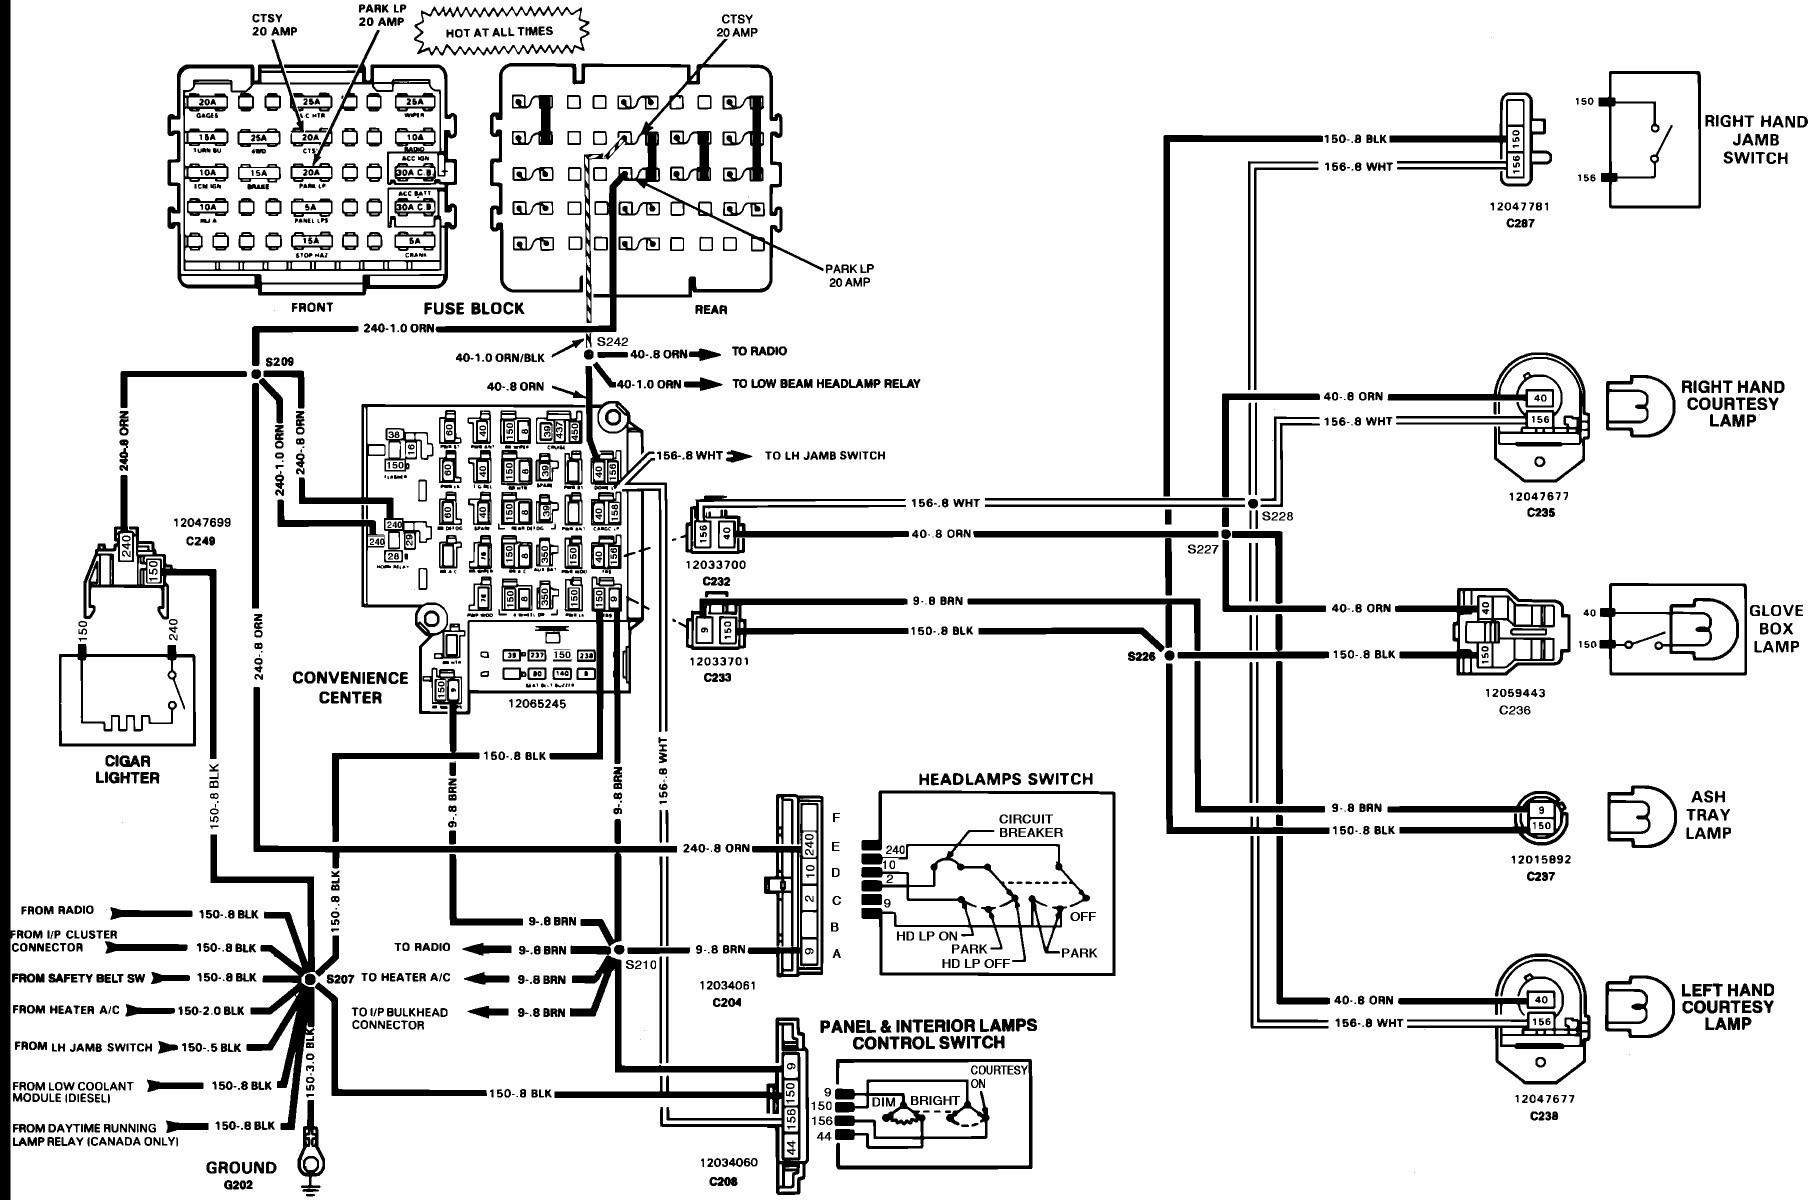 Superb Mopar Alternator Wiring Diagram Wiring Library Wiring Cloud Hisonuggs Outletorg